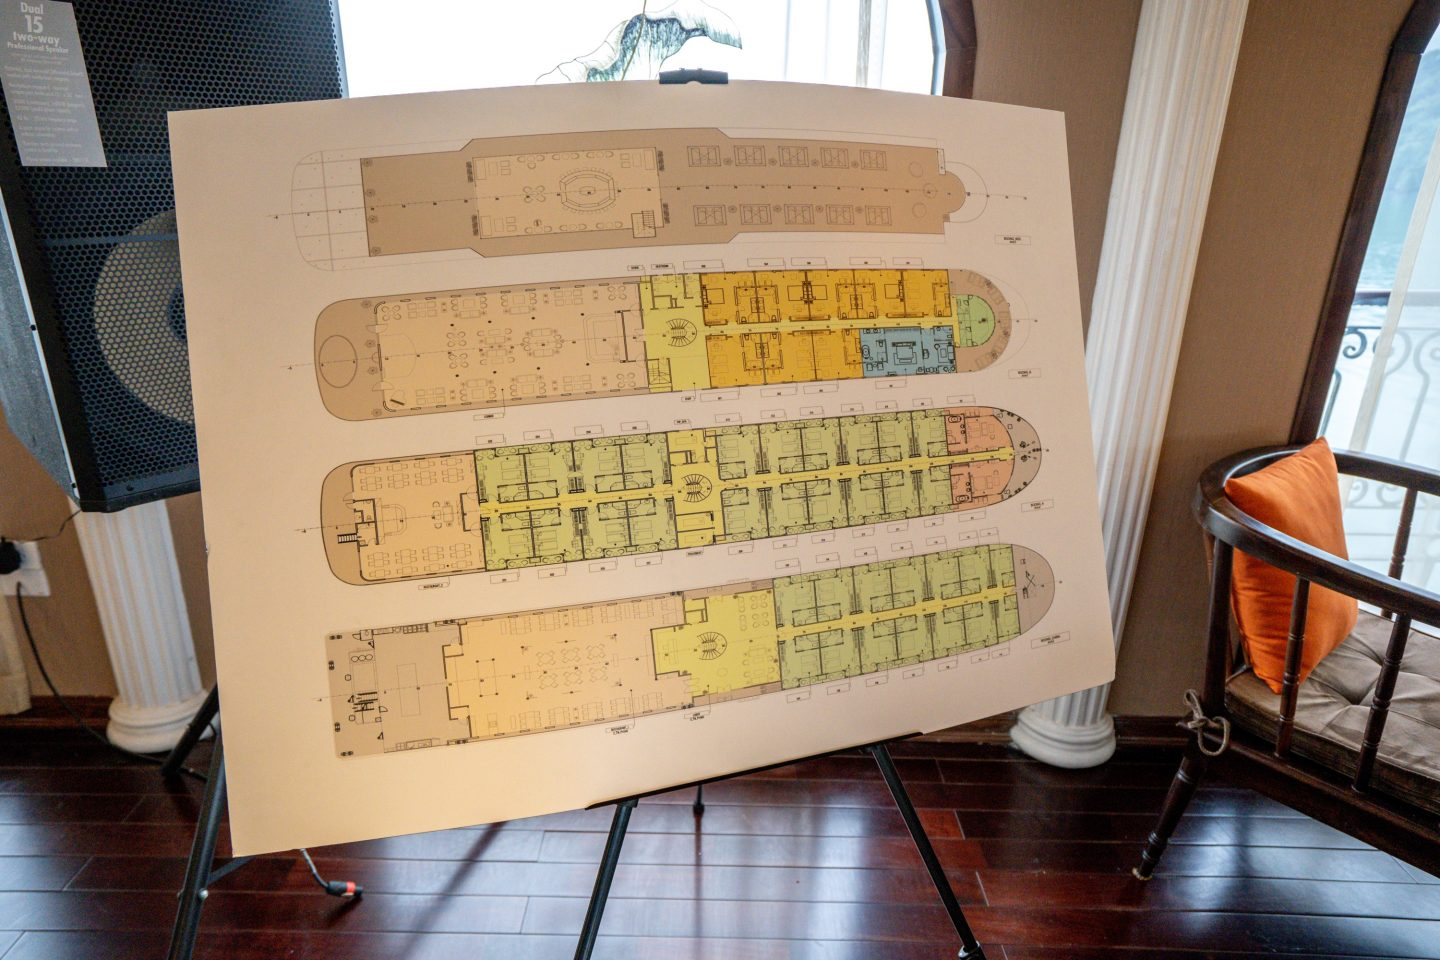 Boat Layout - Indochine Cruise - Live Life and RoamBoat Layout - Indochine Cruise - Live Life and Roam